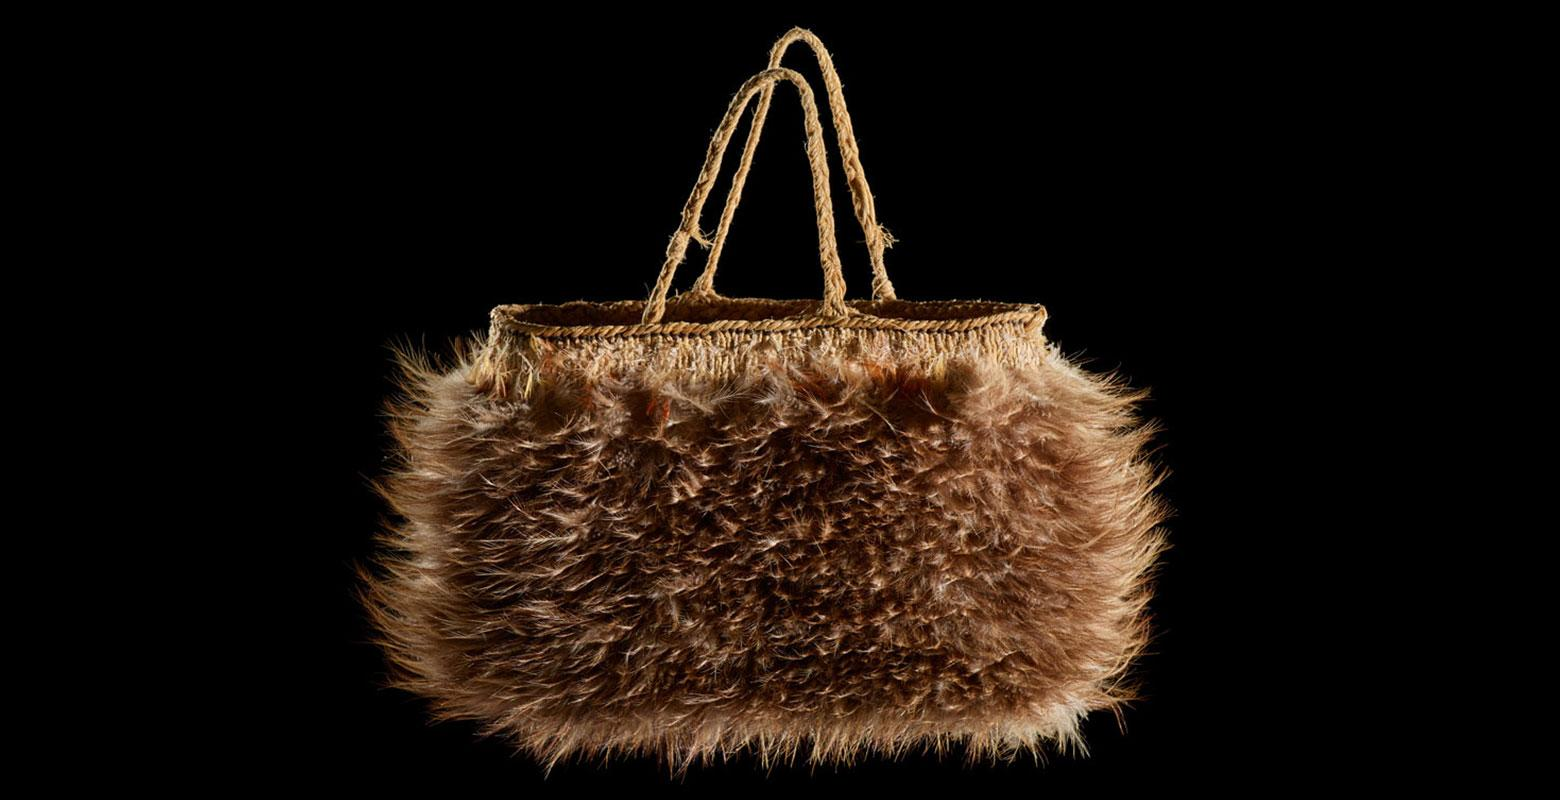 Bag made of kiwi feathers